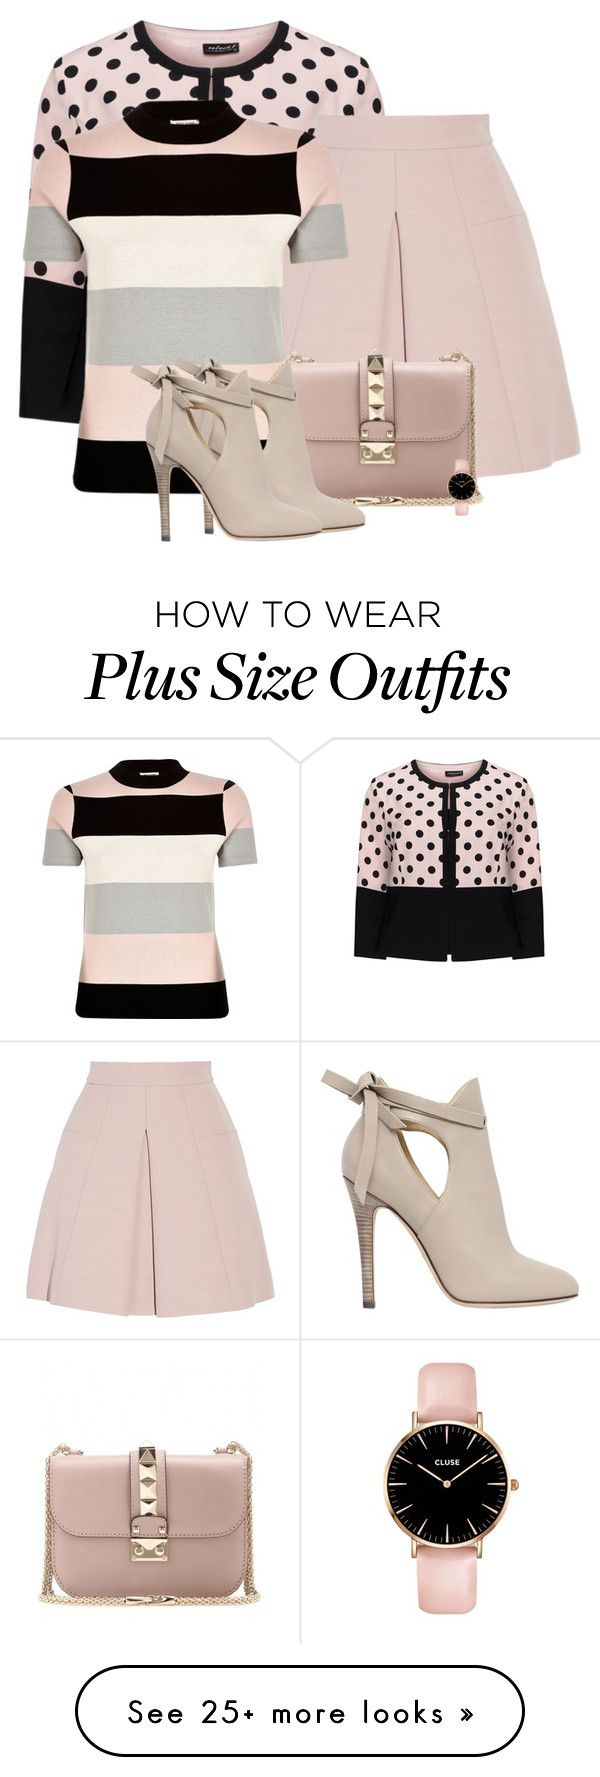 """""""Mixed Prints"""" by barbarapoole on Polyvore featuring Hermann Lange, Alexander McQueen, River Island, Valentino and Jimmy Choo"""